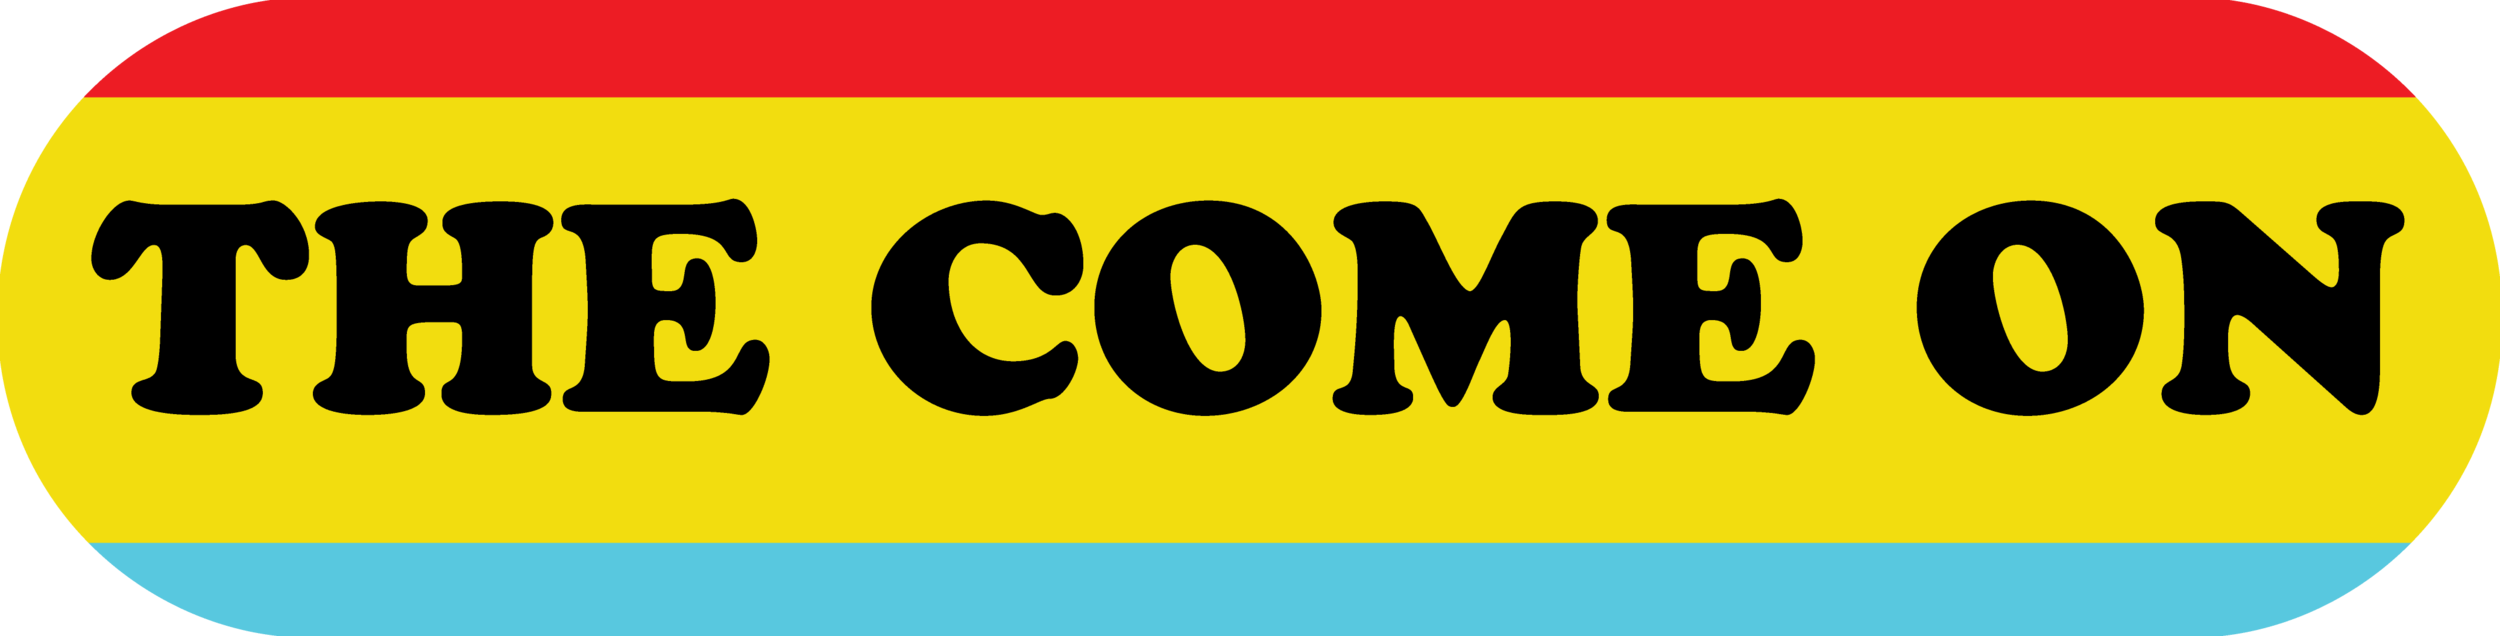 The Come On logo squarespace.png